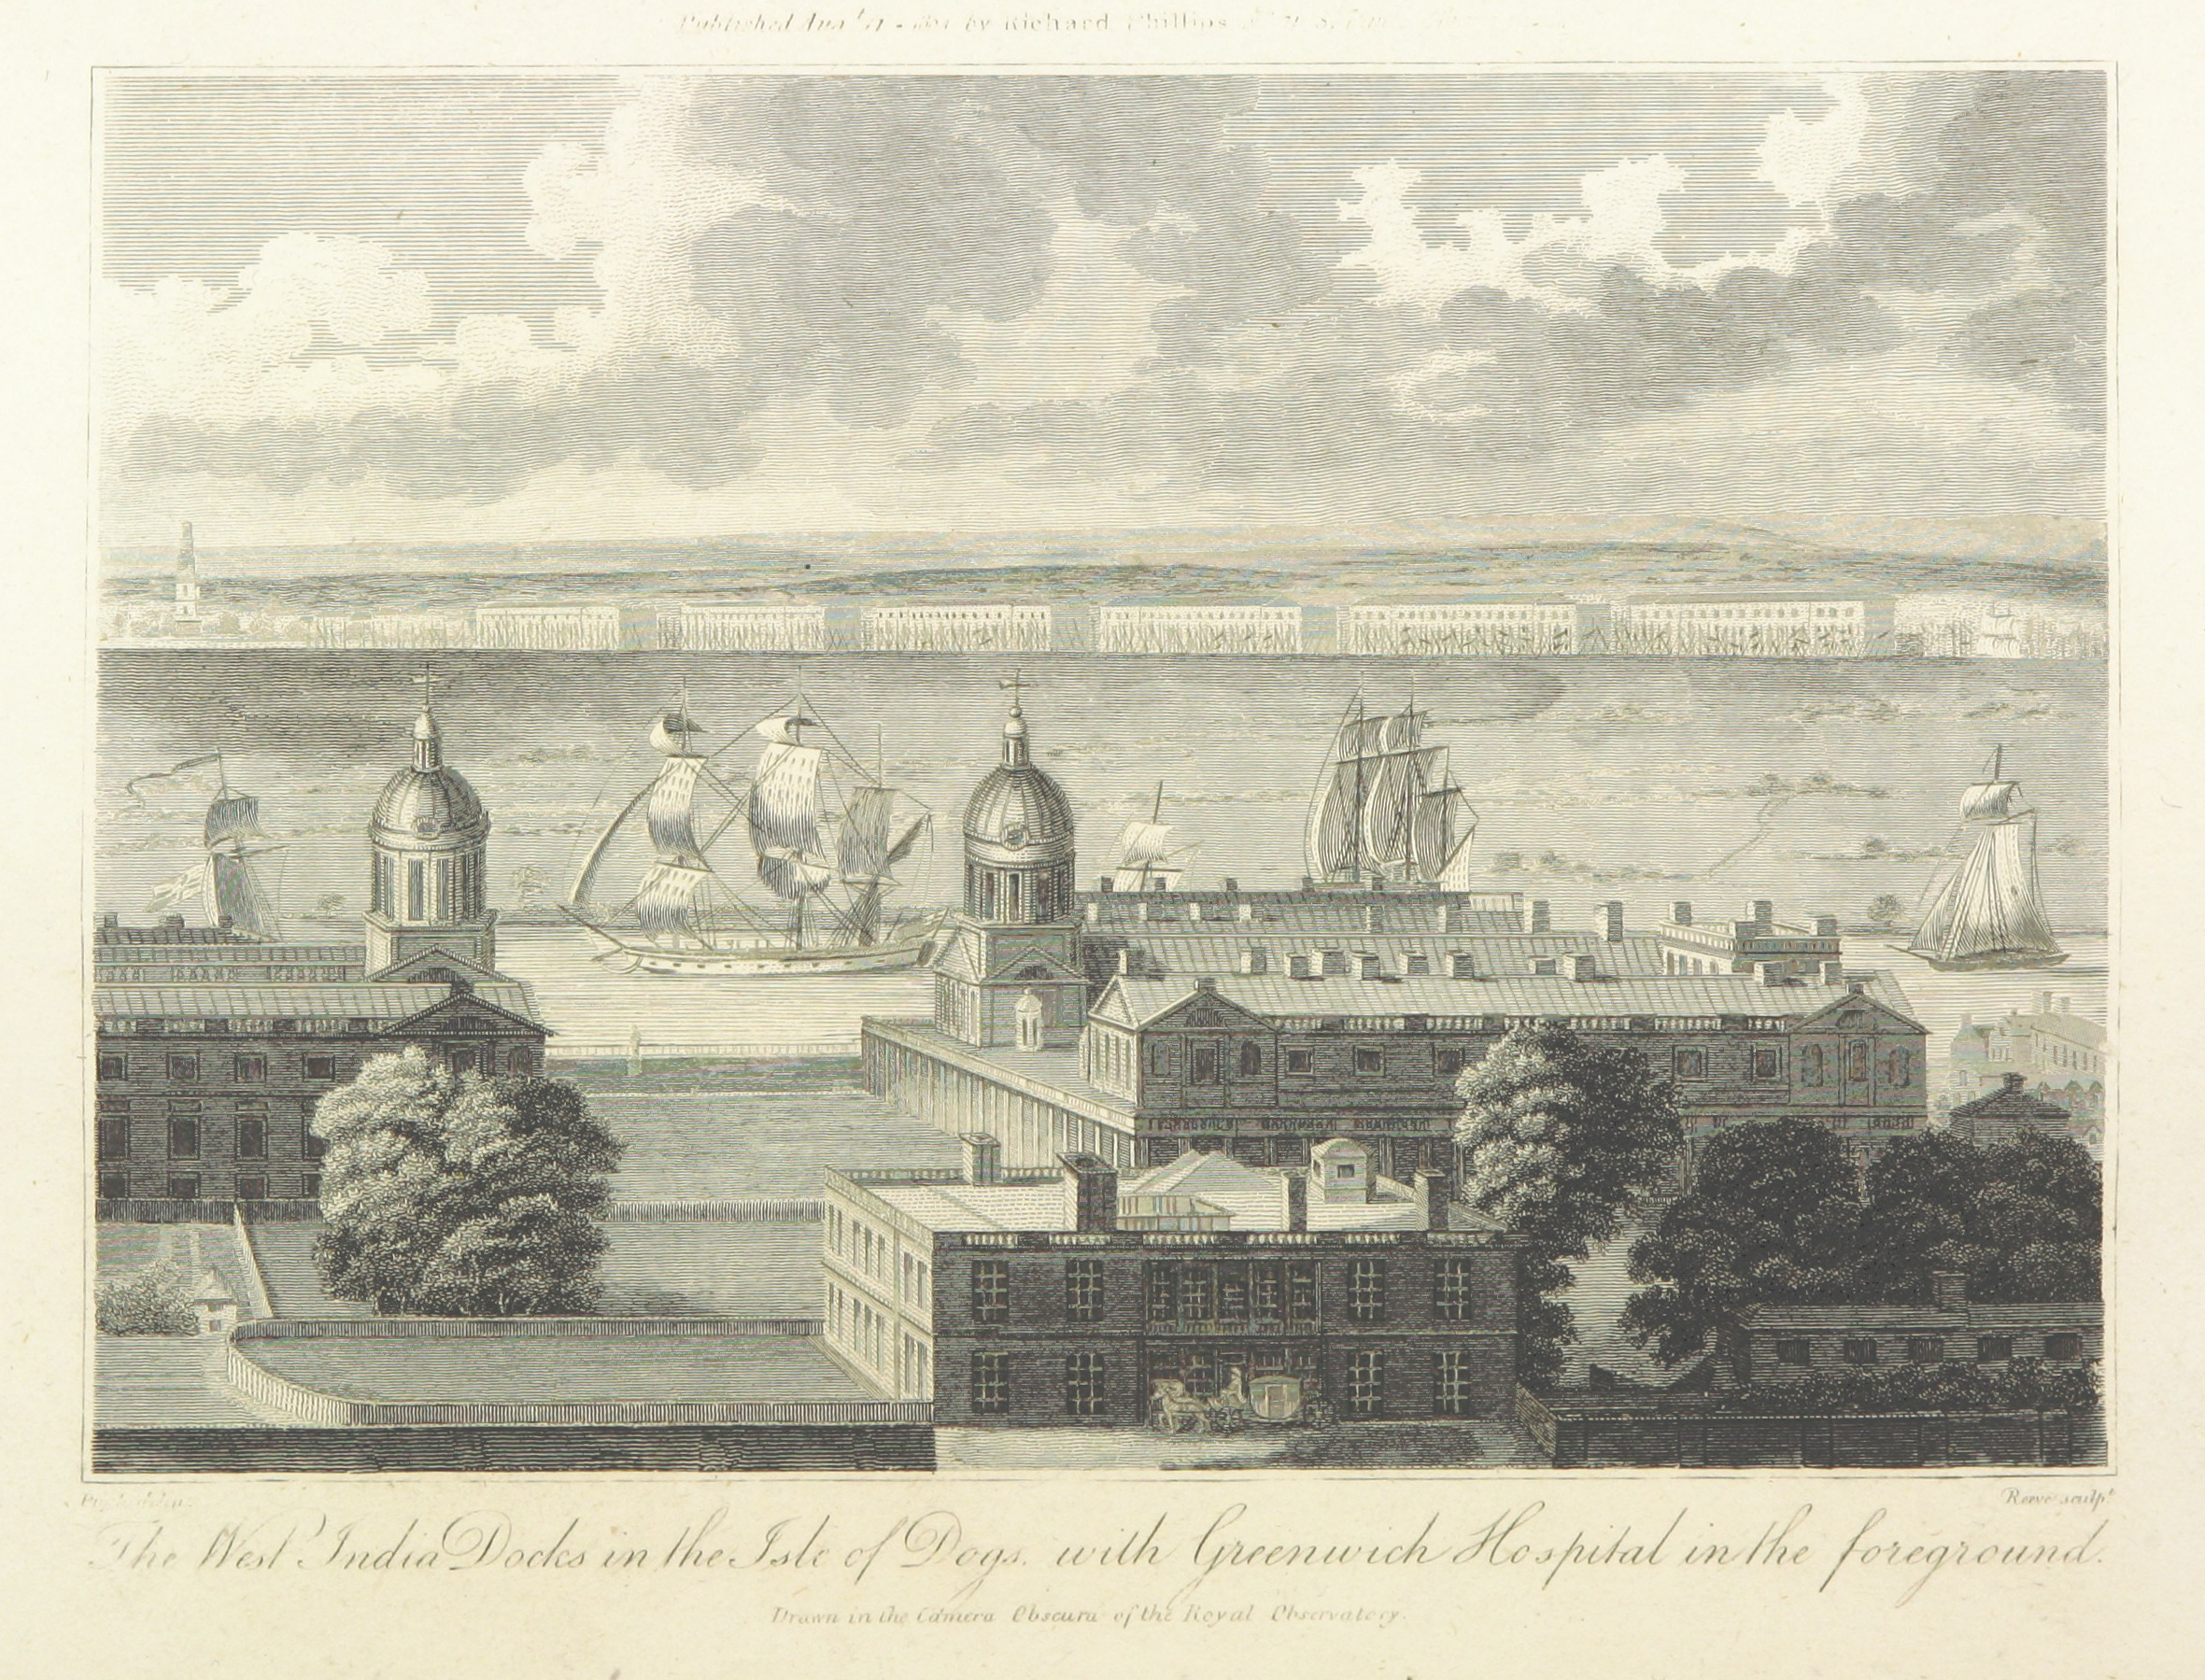 Phillips(1804)_p176_-_The_West_India_Docks_in_the_Isle_of_Dogs_with_Greenwich_Hospital_in_the_foreground